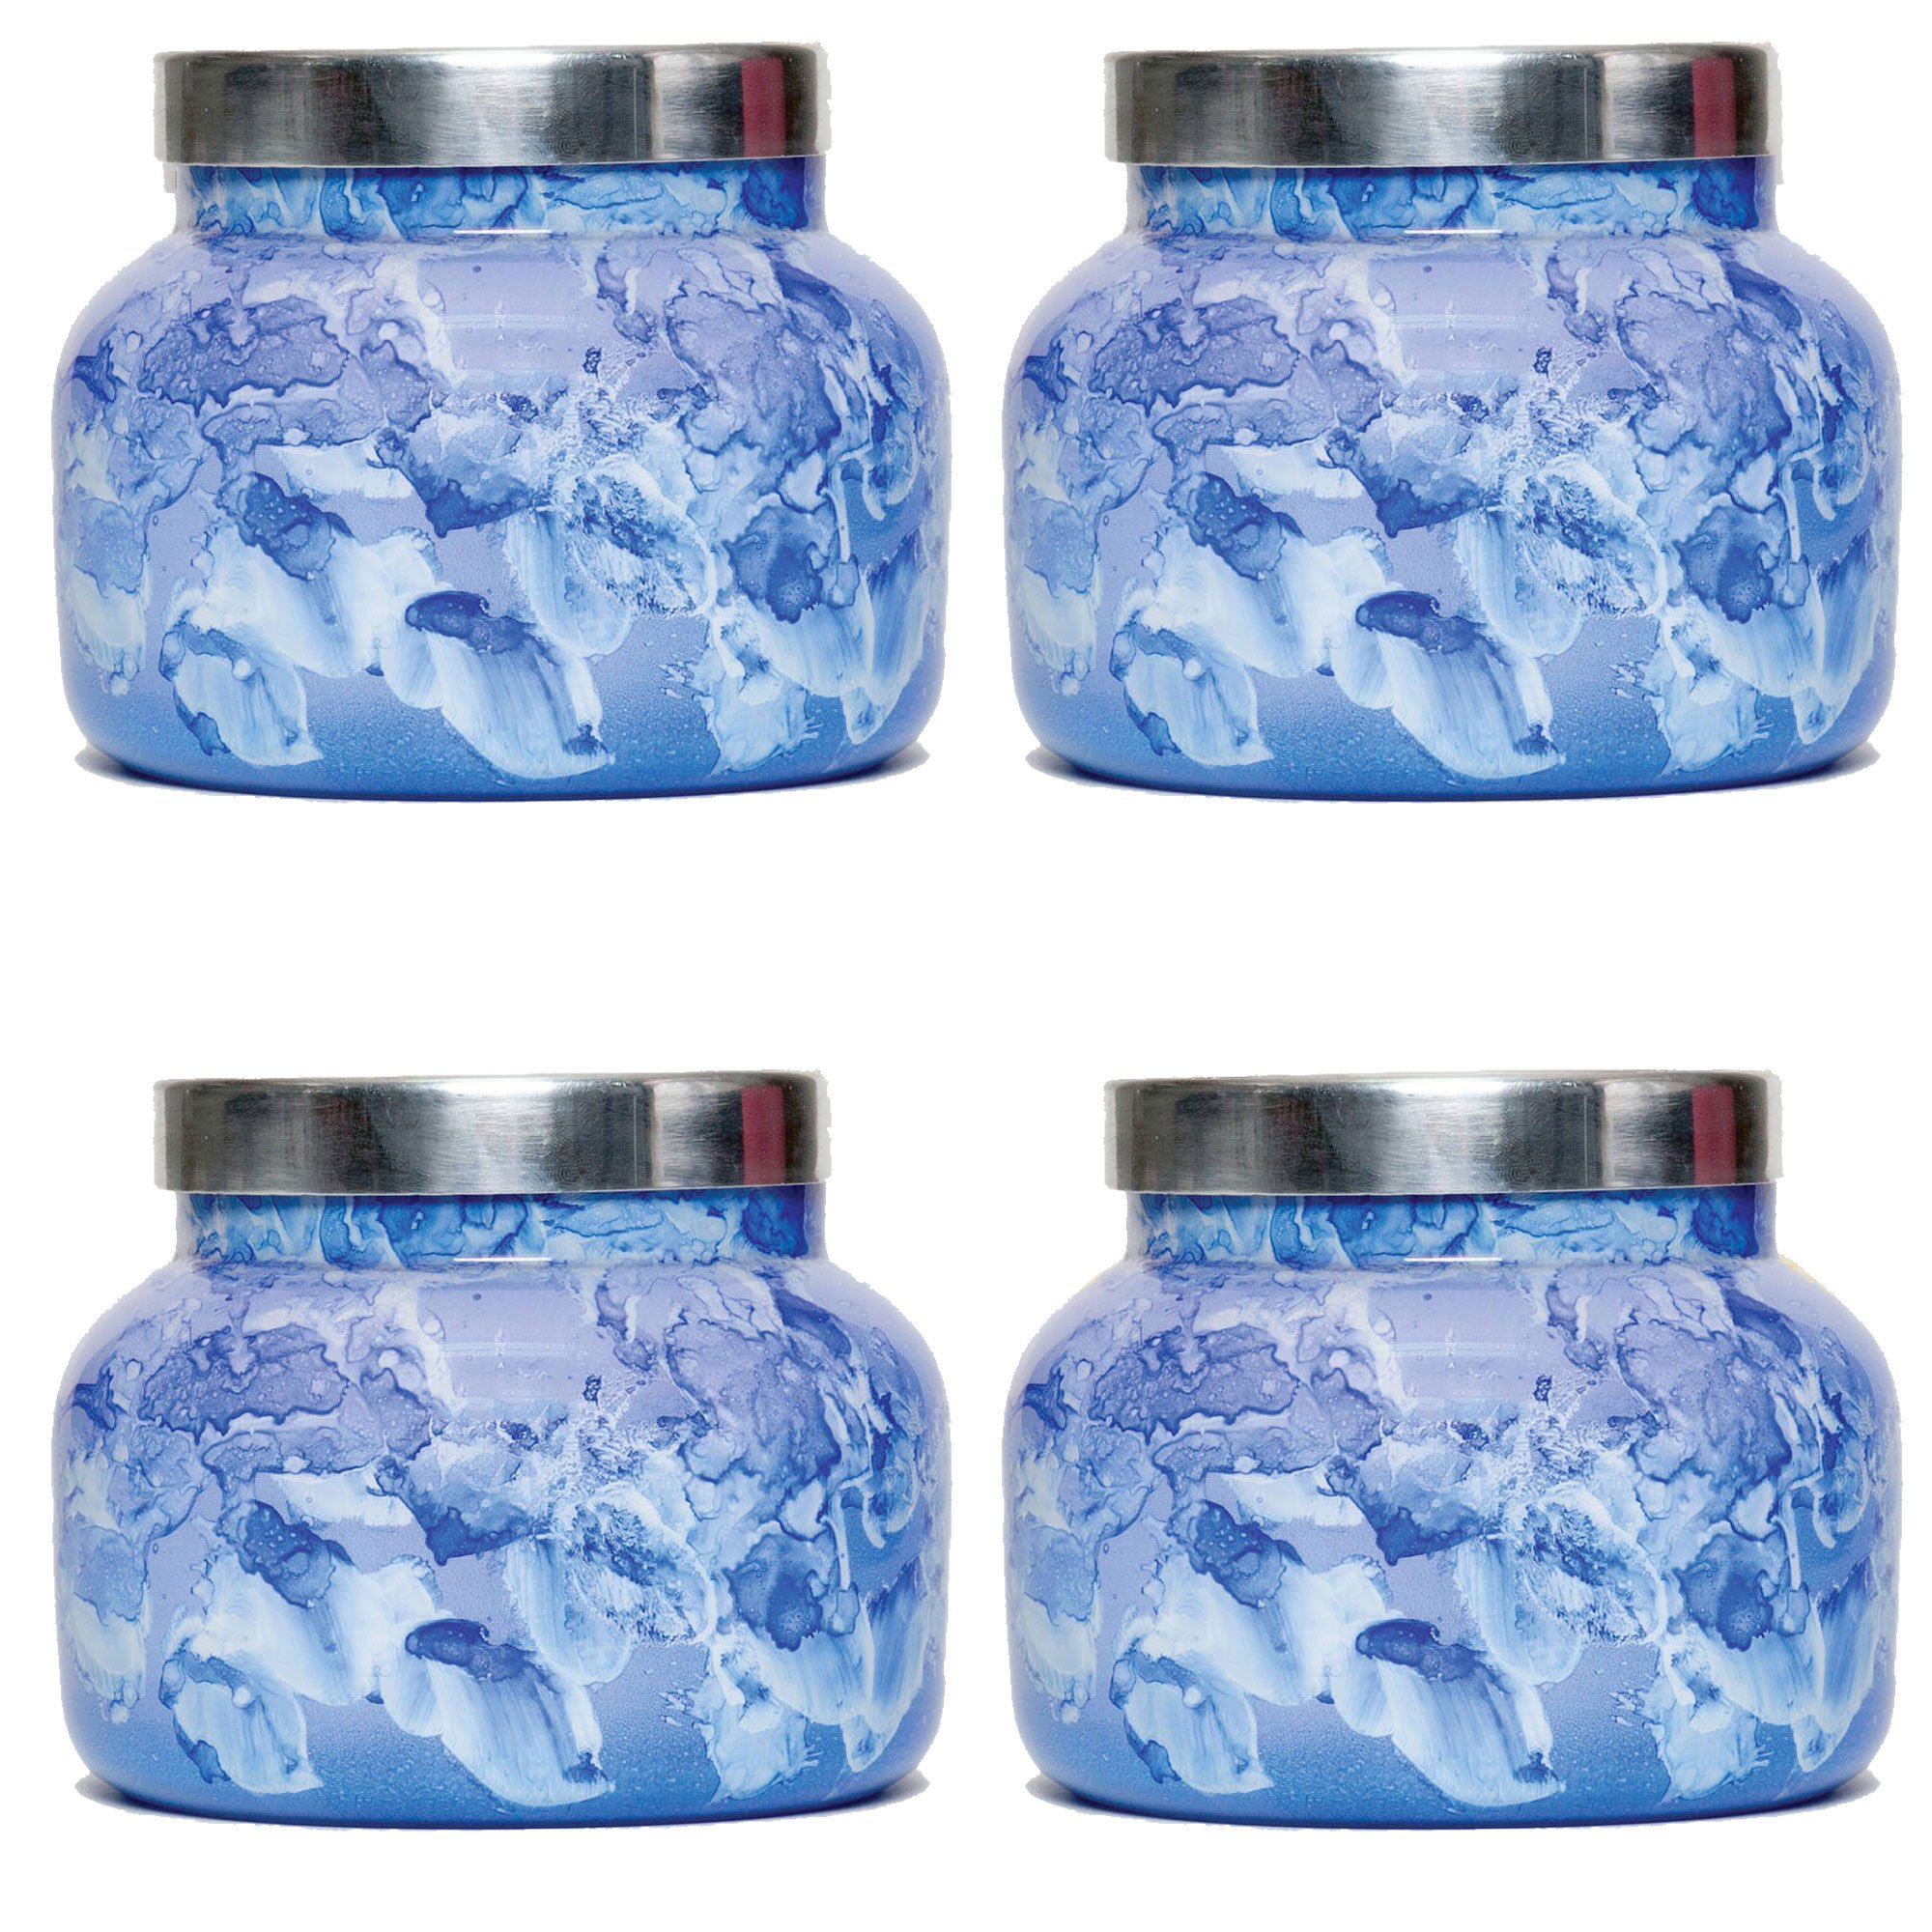 19 oz Capri Blue Watercolor Jar Blue Jean (4 pack) by Capri Blue